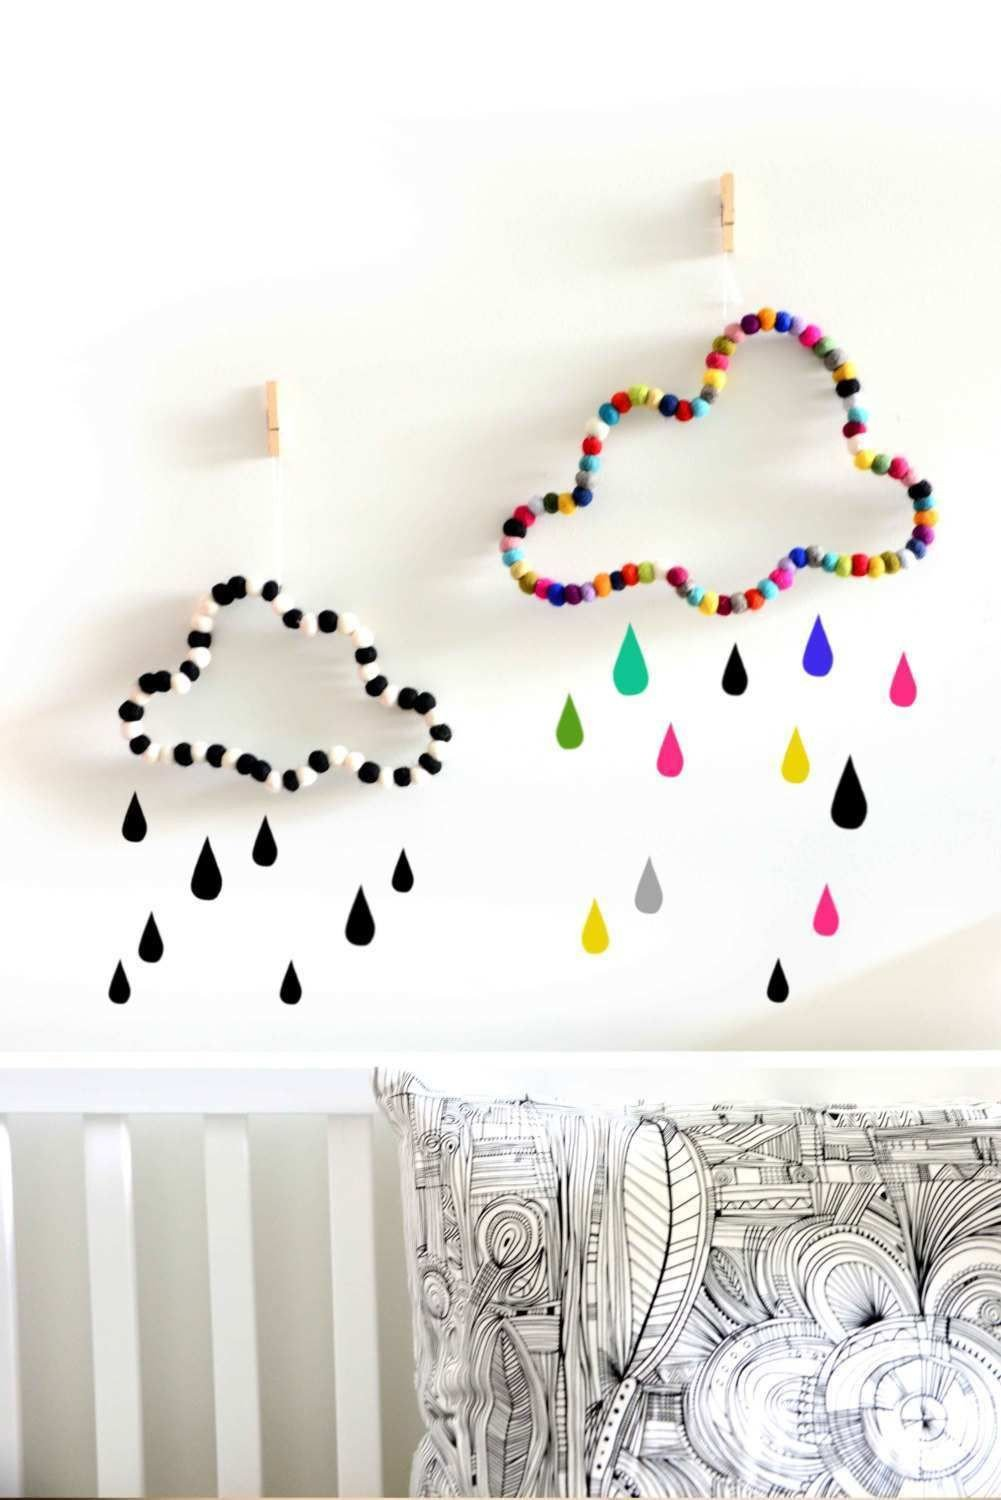 Kids Bedroom Wall Decor Best Of Wall Hanging Ideas for Bedrooms Luxury Cloud Wall Decor